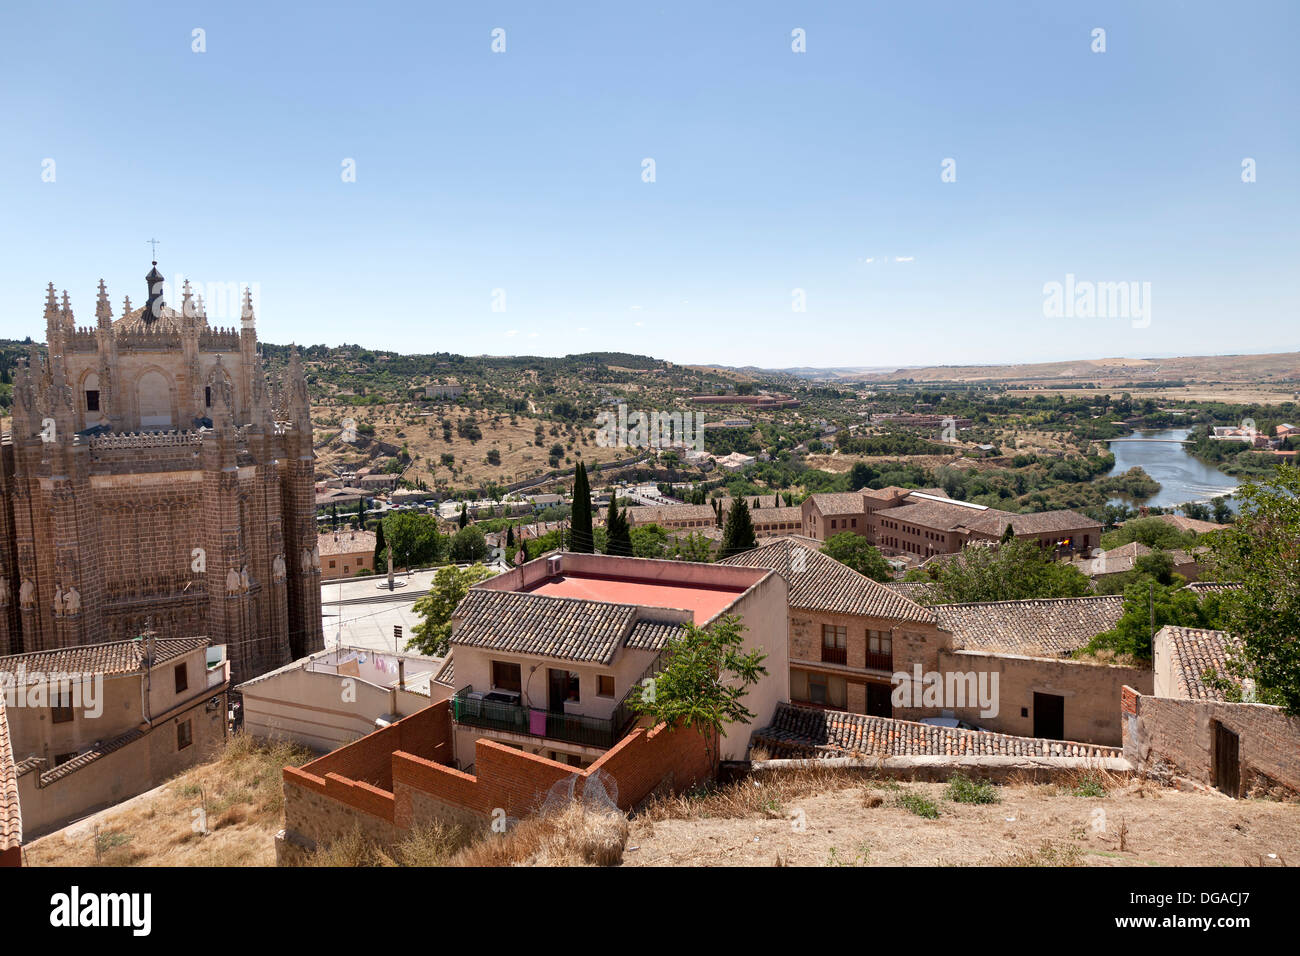 View from Toledo, Spain - Stock Image